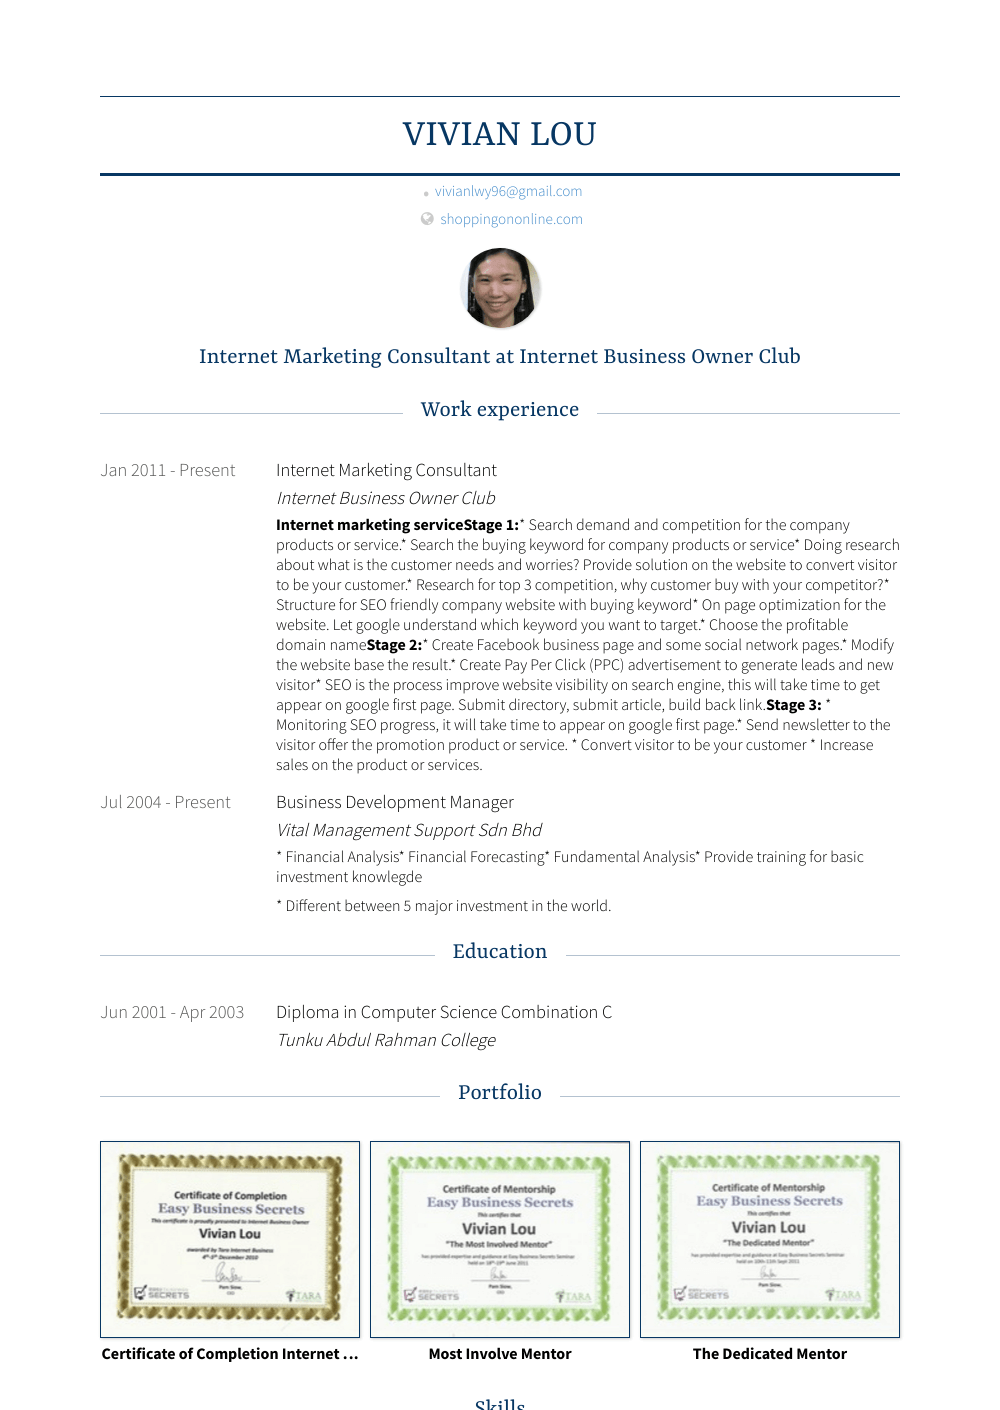 Internet Marketing Consultant Resume Sample and Template